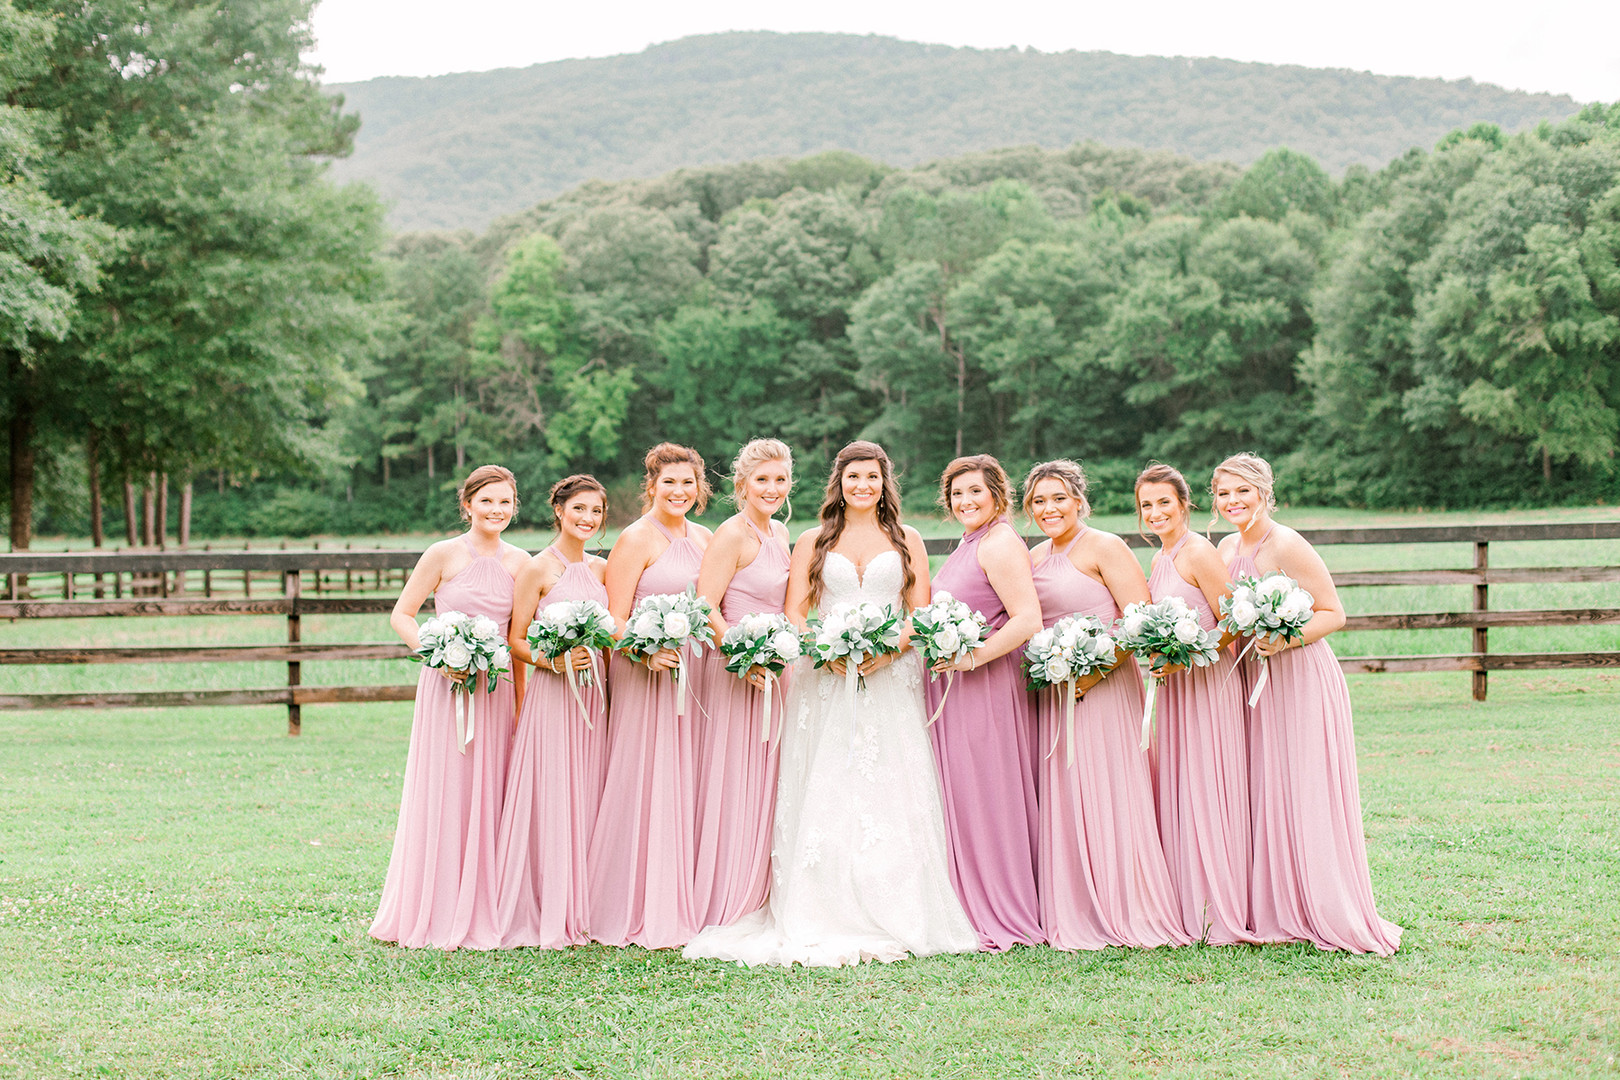 Grant + Kandy | The Michael Wedding Barn